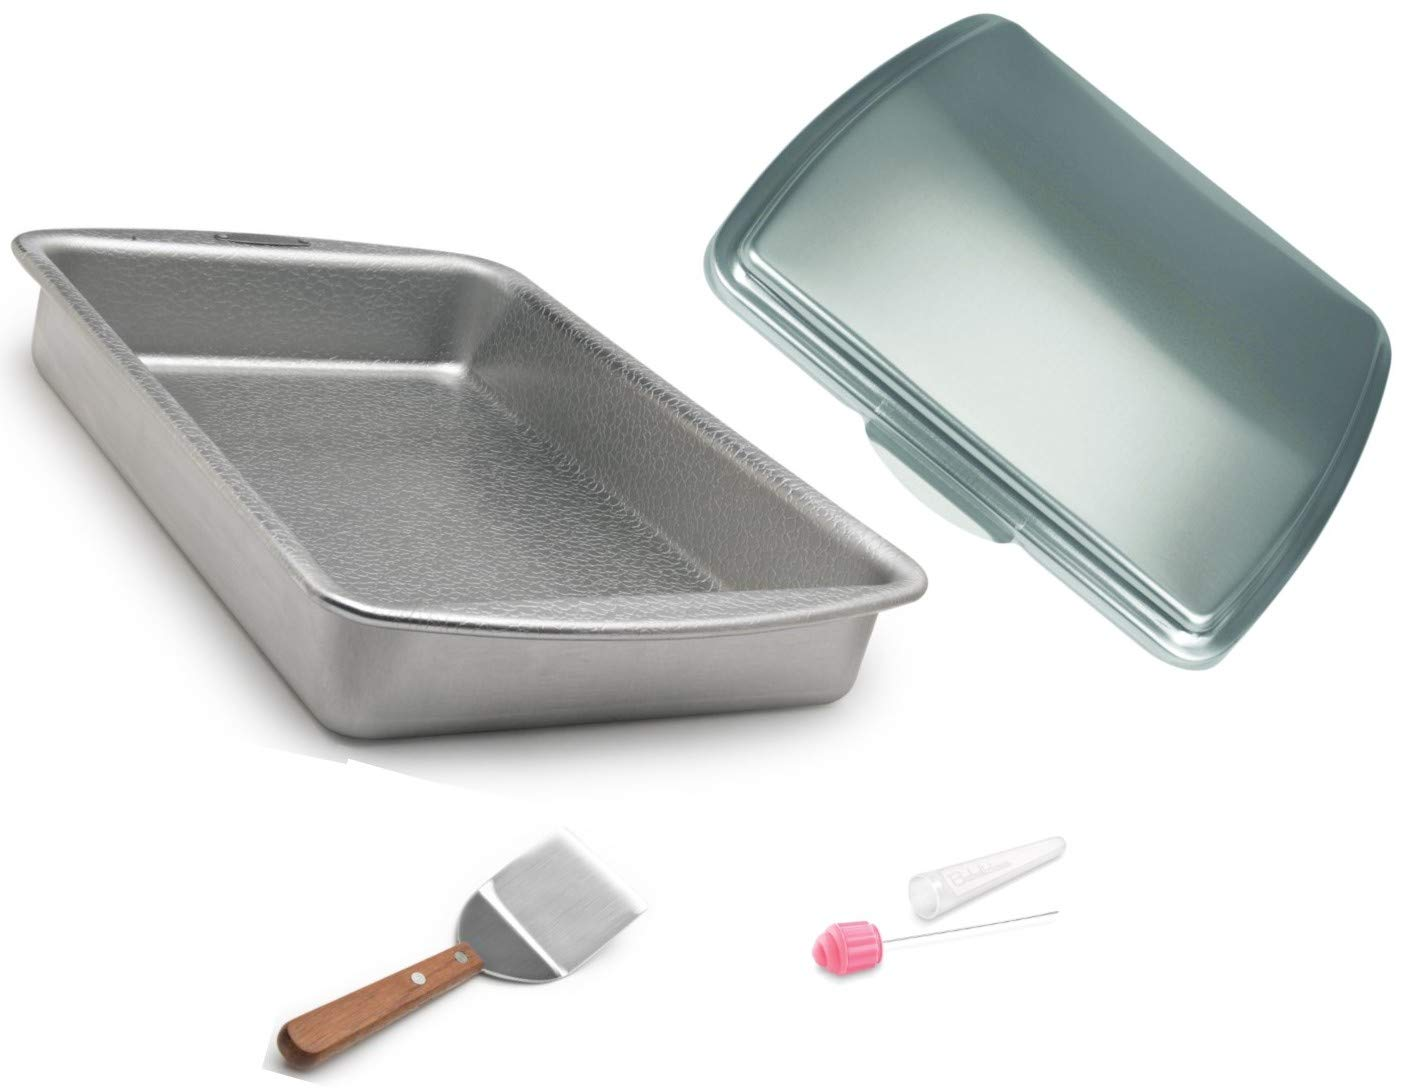 Doughmakers 9 x 13 inch Cake Pan Commercial Grade with Lid, Stainless-Steel Serving Spatula and Cake Tester with Cover 4 piece set bundle